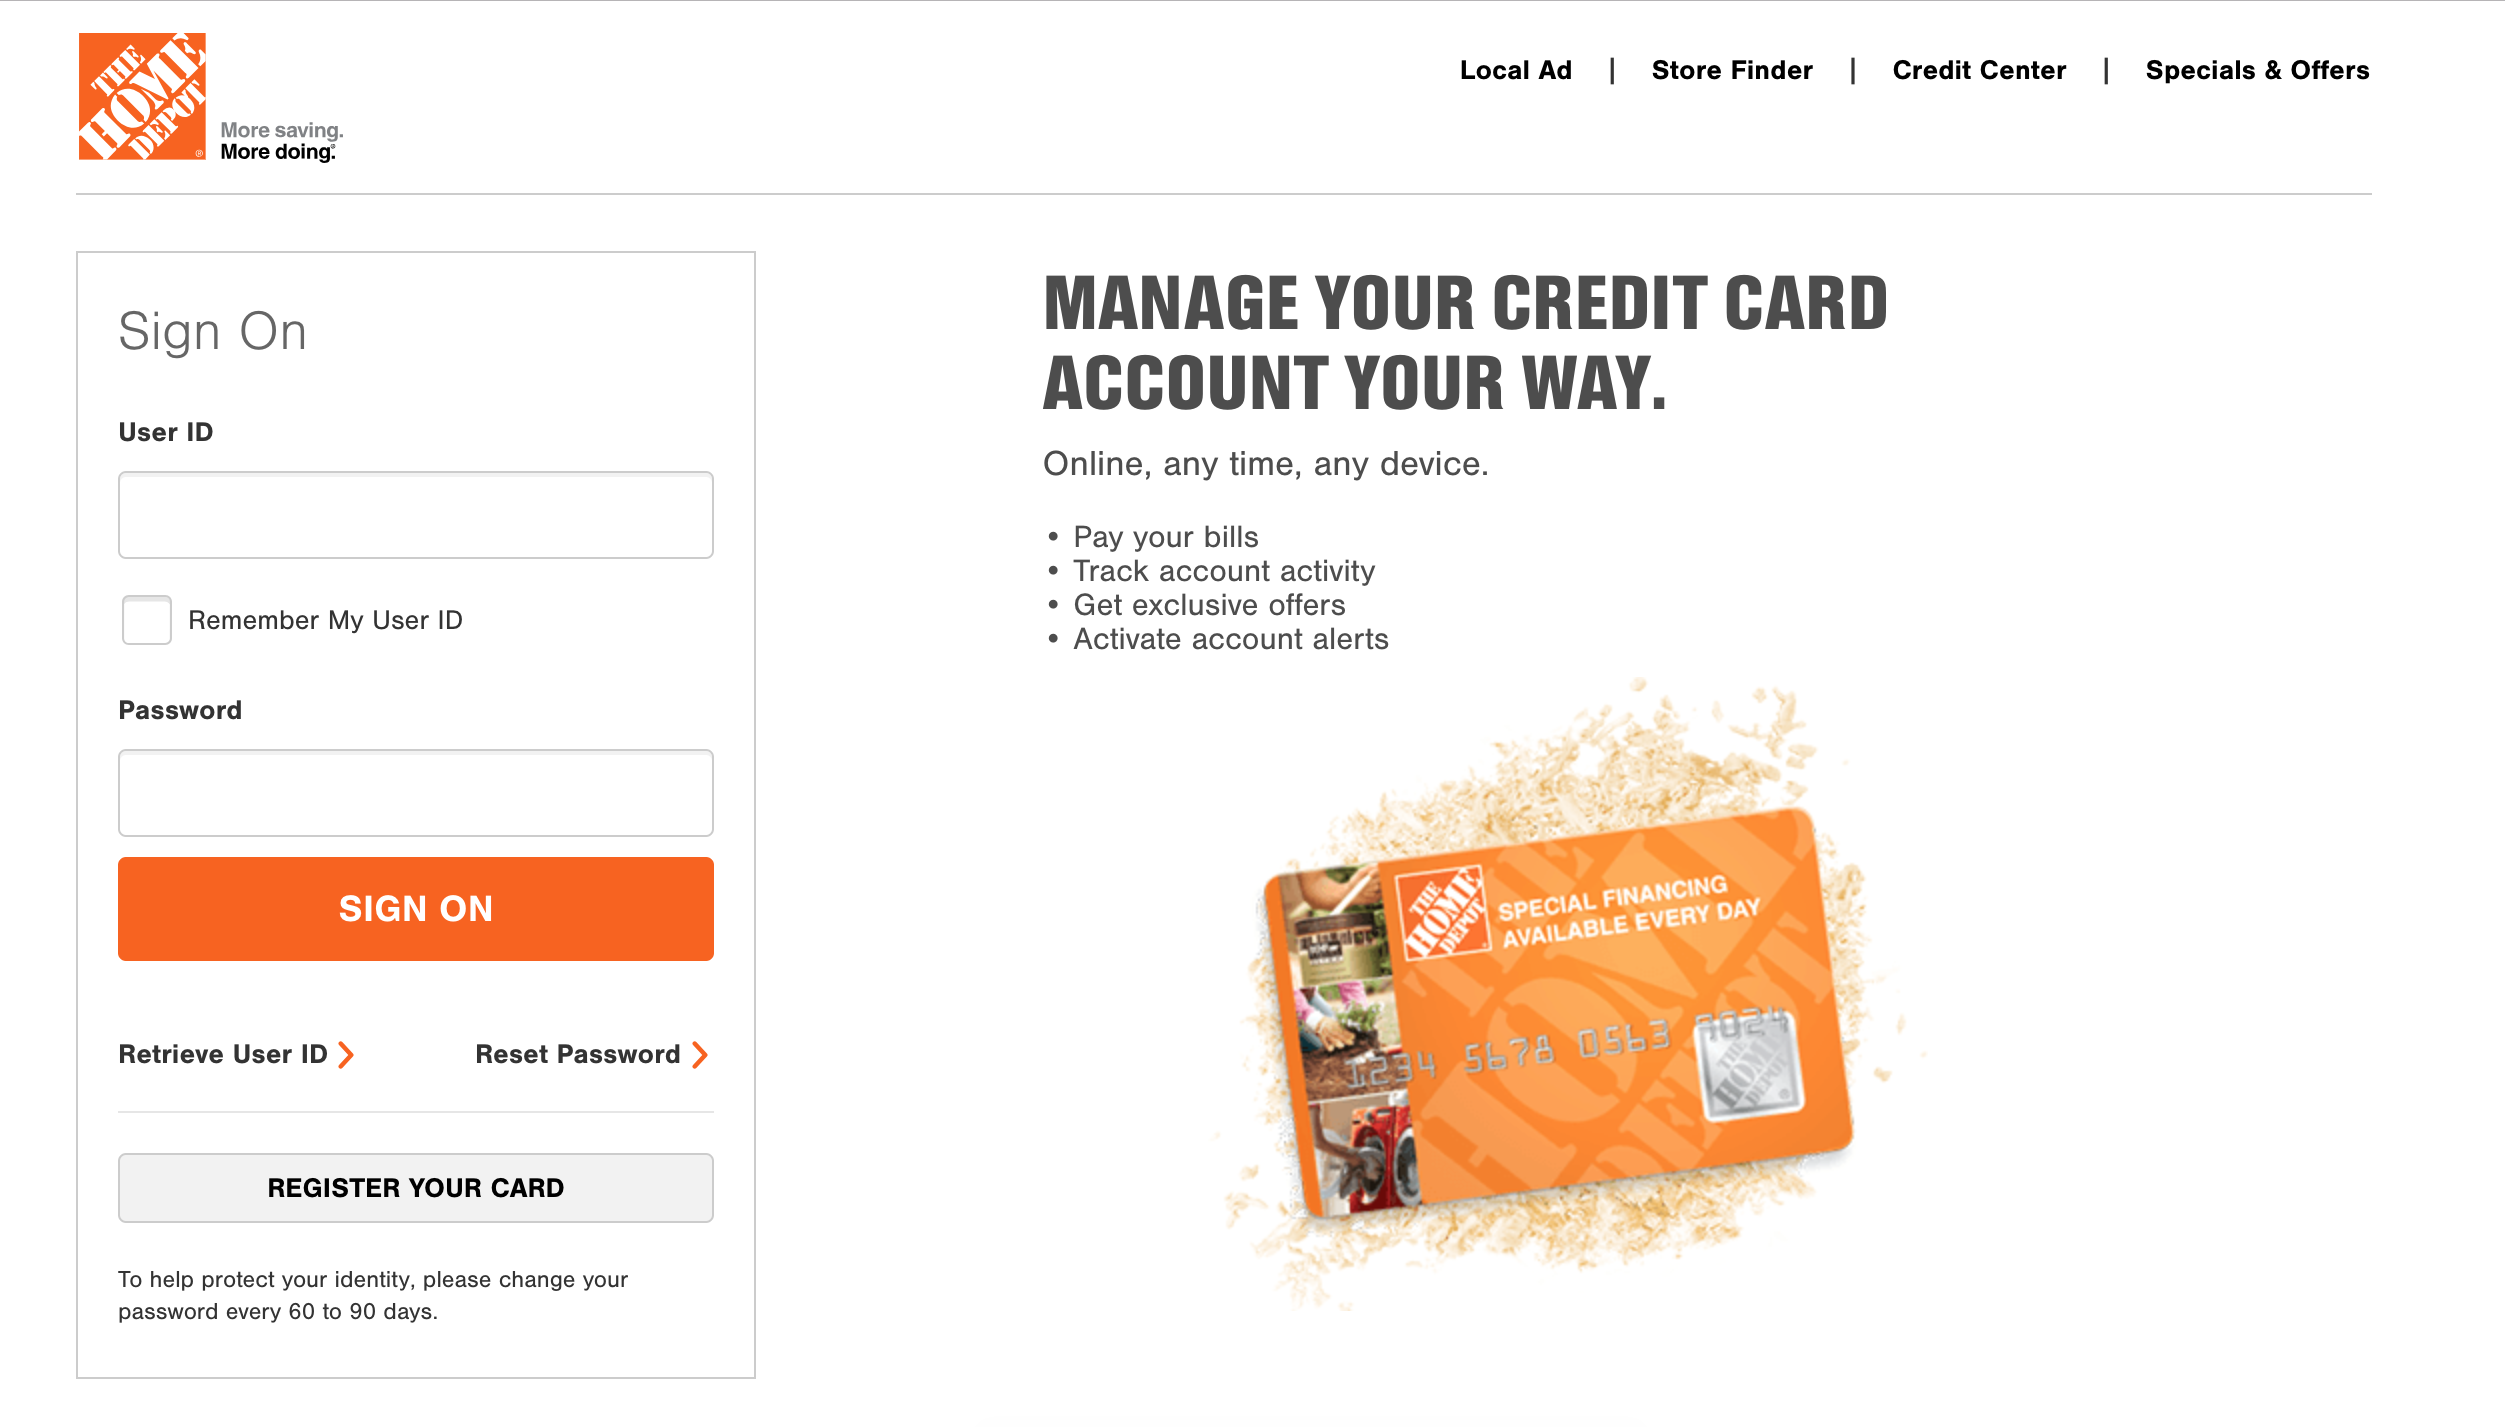 Home Depot Consumer Card Log-In : Portal